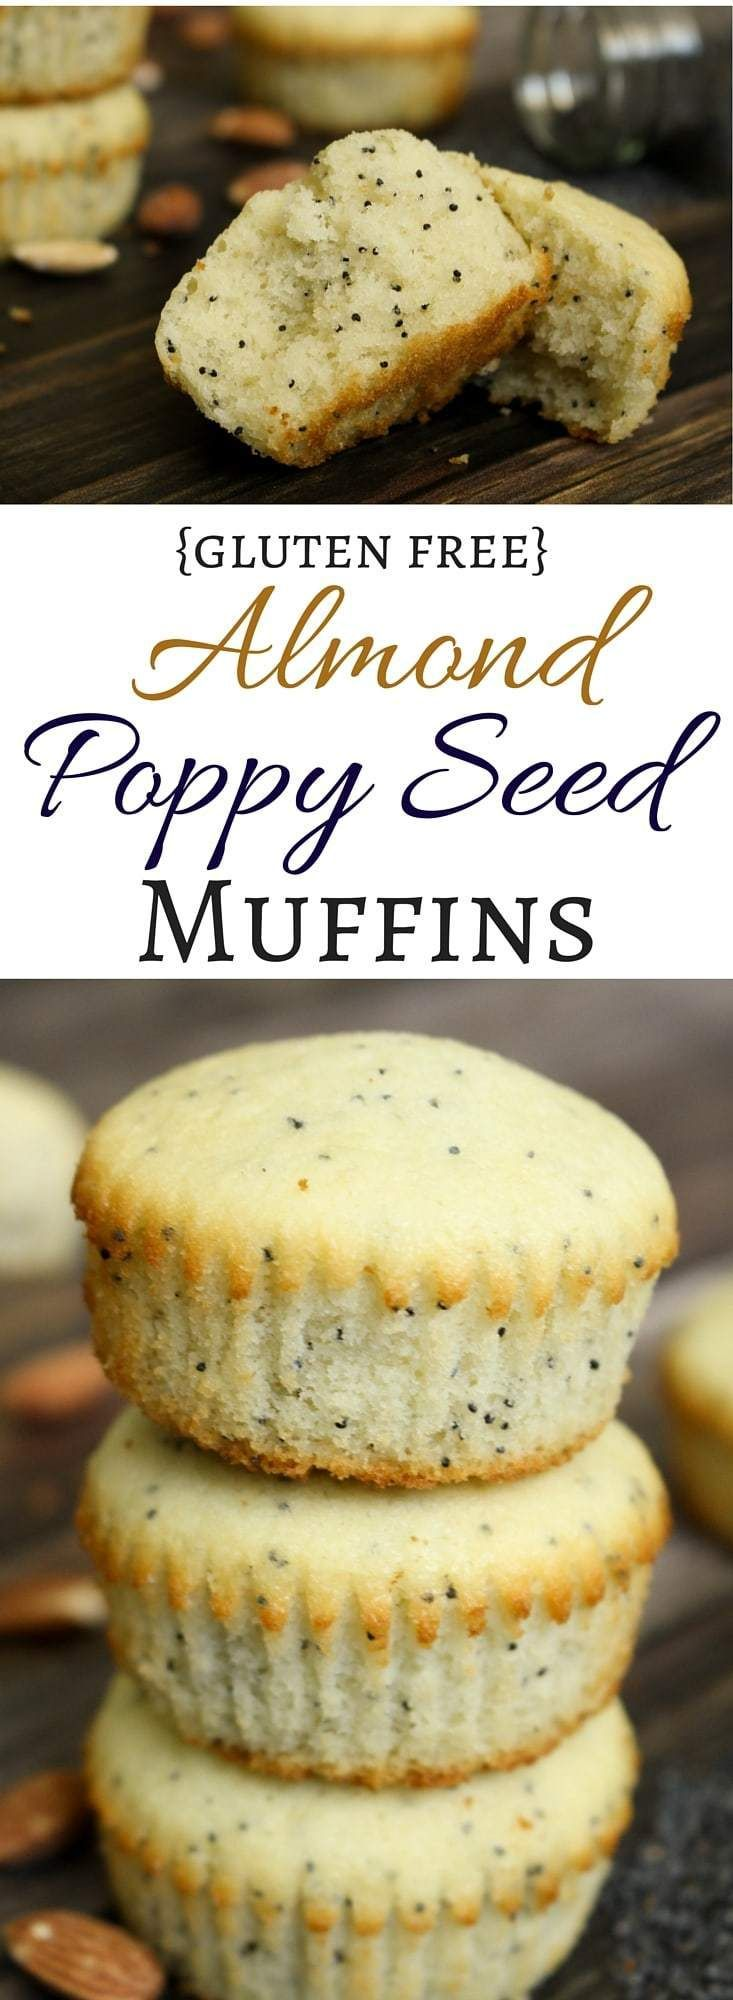 Soft, buttery, gluten free muffins bursting with almond flavor and crunchy poppy seeds are reminiscent of those bakery muffins we all love! They are the star of any breakfast spread and also make a great grab-and-go snack. #glutenfreebreakfasts